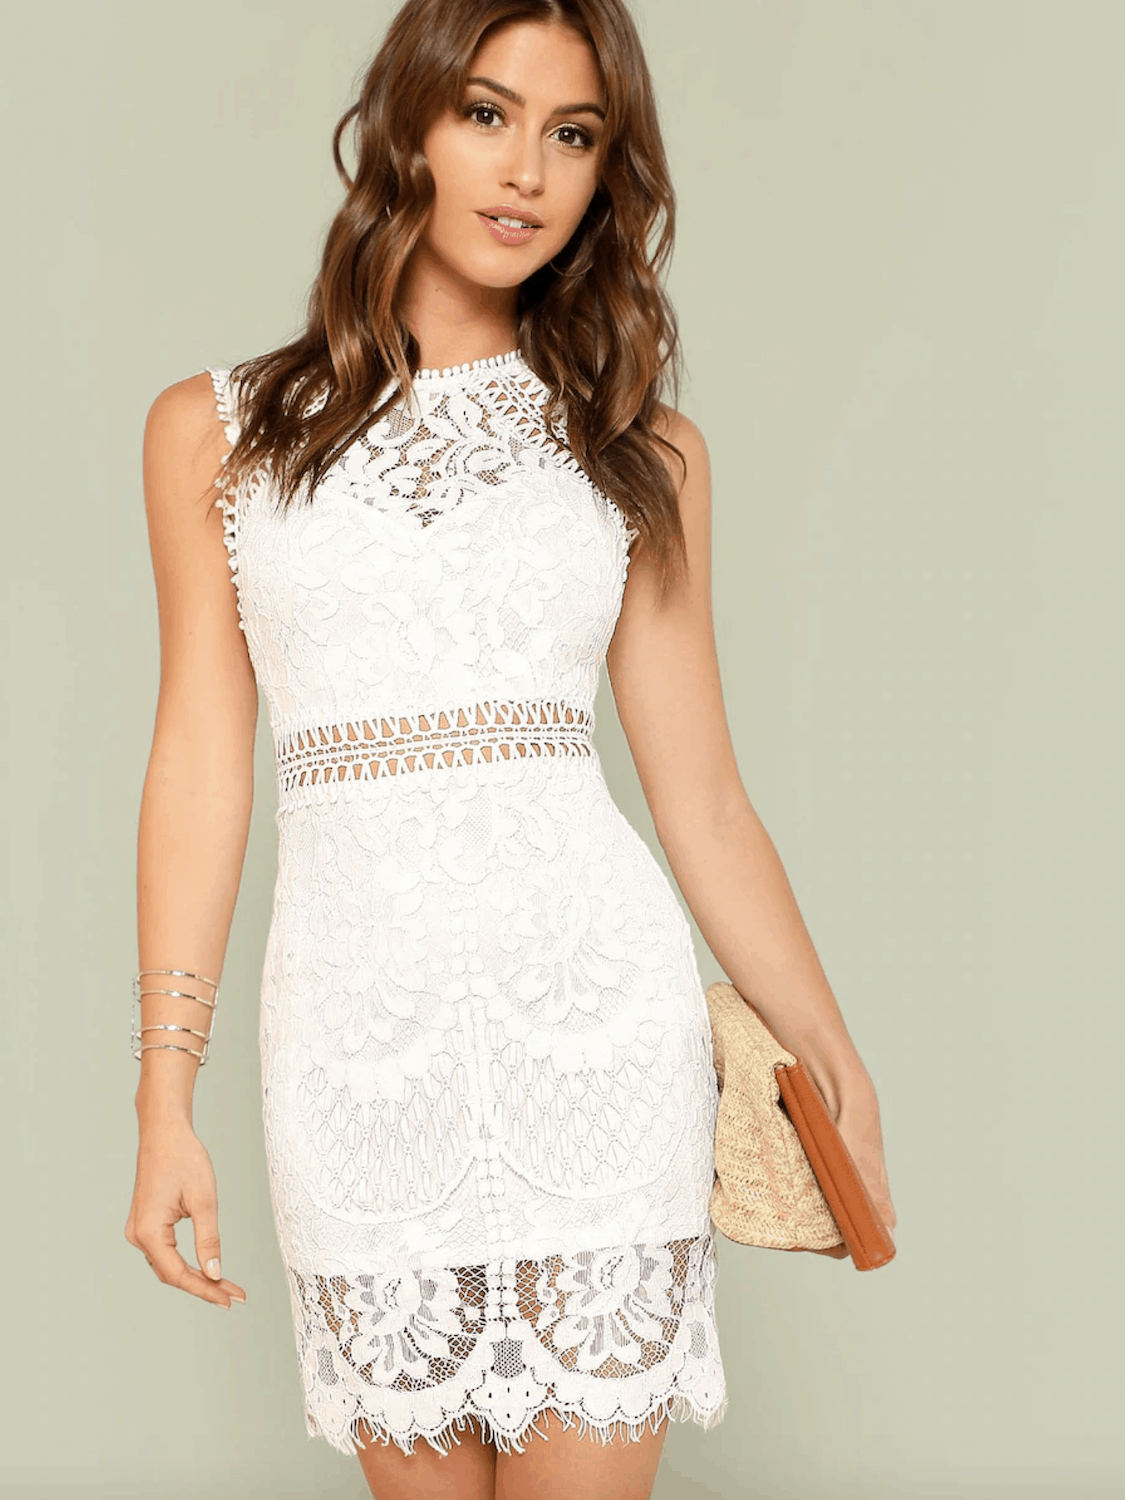 Bridal Shower Dresses for the Bride SHEIN Scalloped Hem Guipure Lace Bodycon Dress